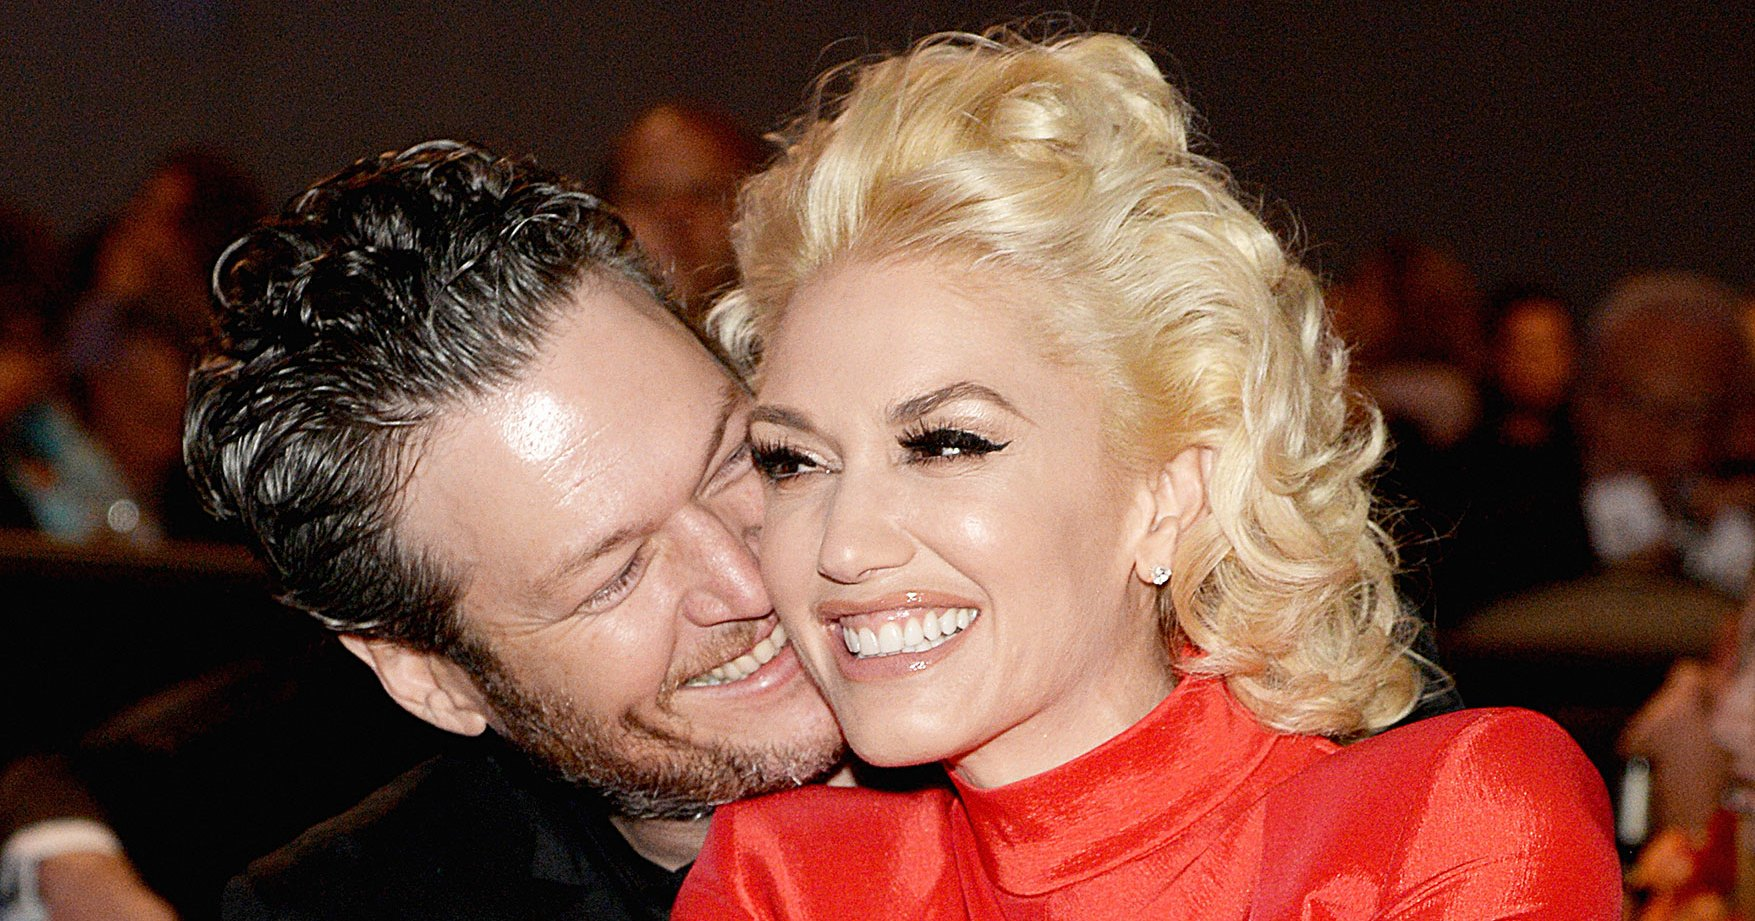 Gwen Stefani Says There Is 'Zero Pressure' to Get Engaged, Hopes Blake Shelton Is Her 'Forever'